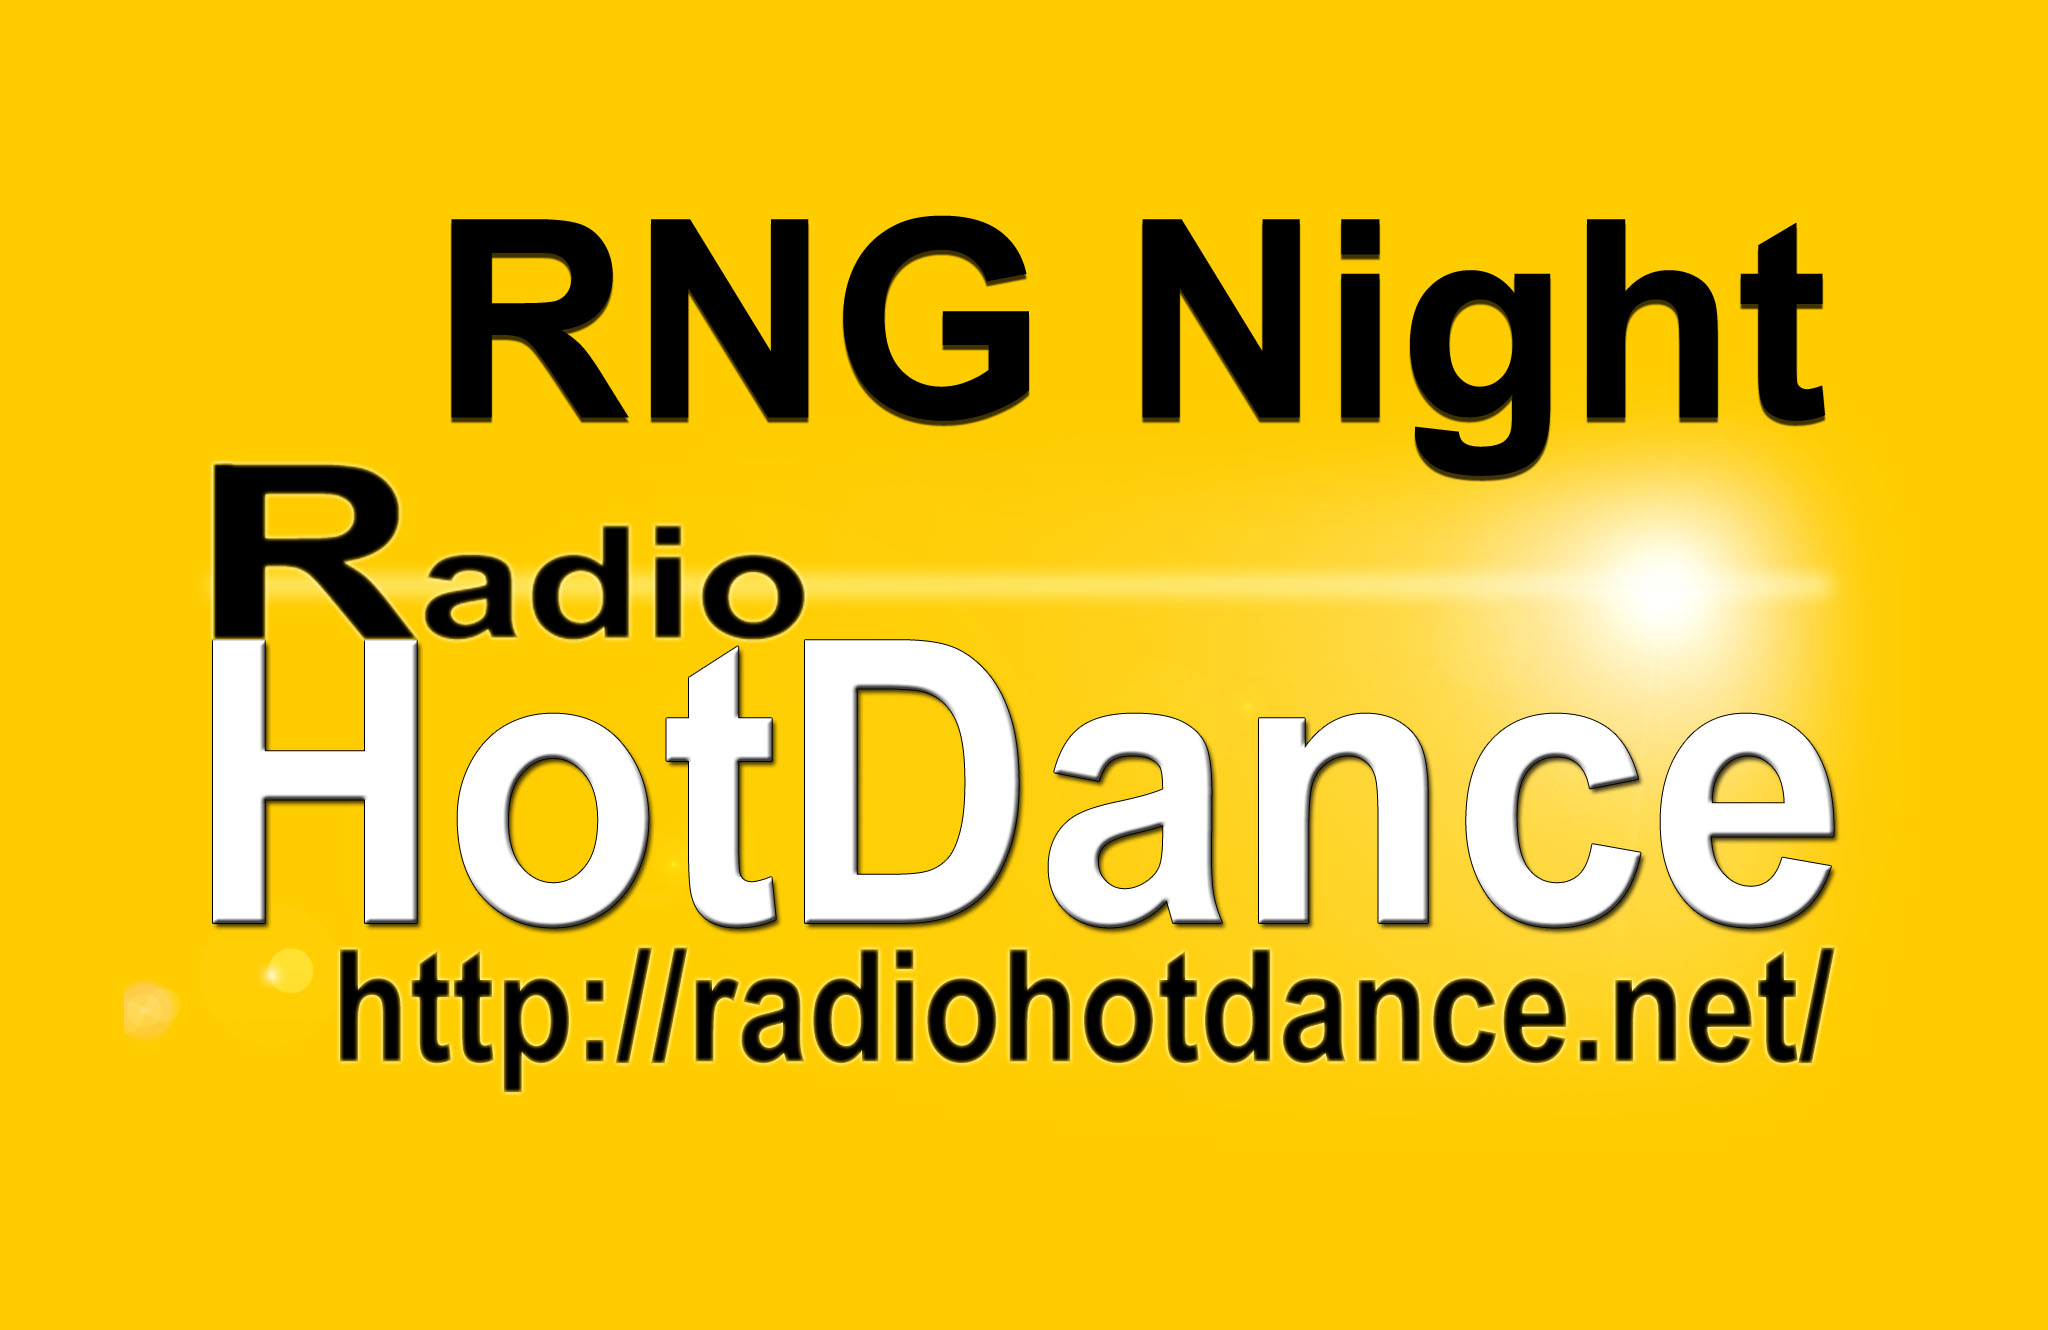 RadioHotDance NRG Night